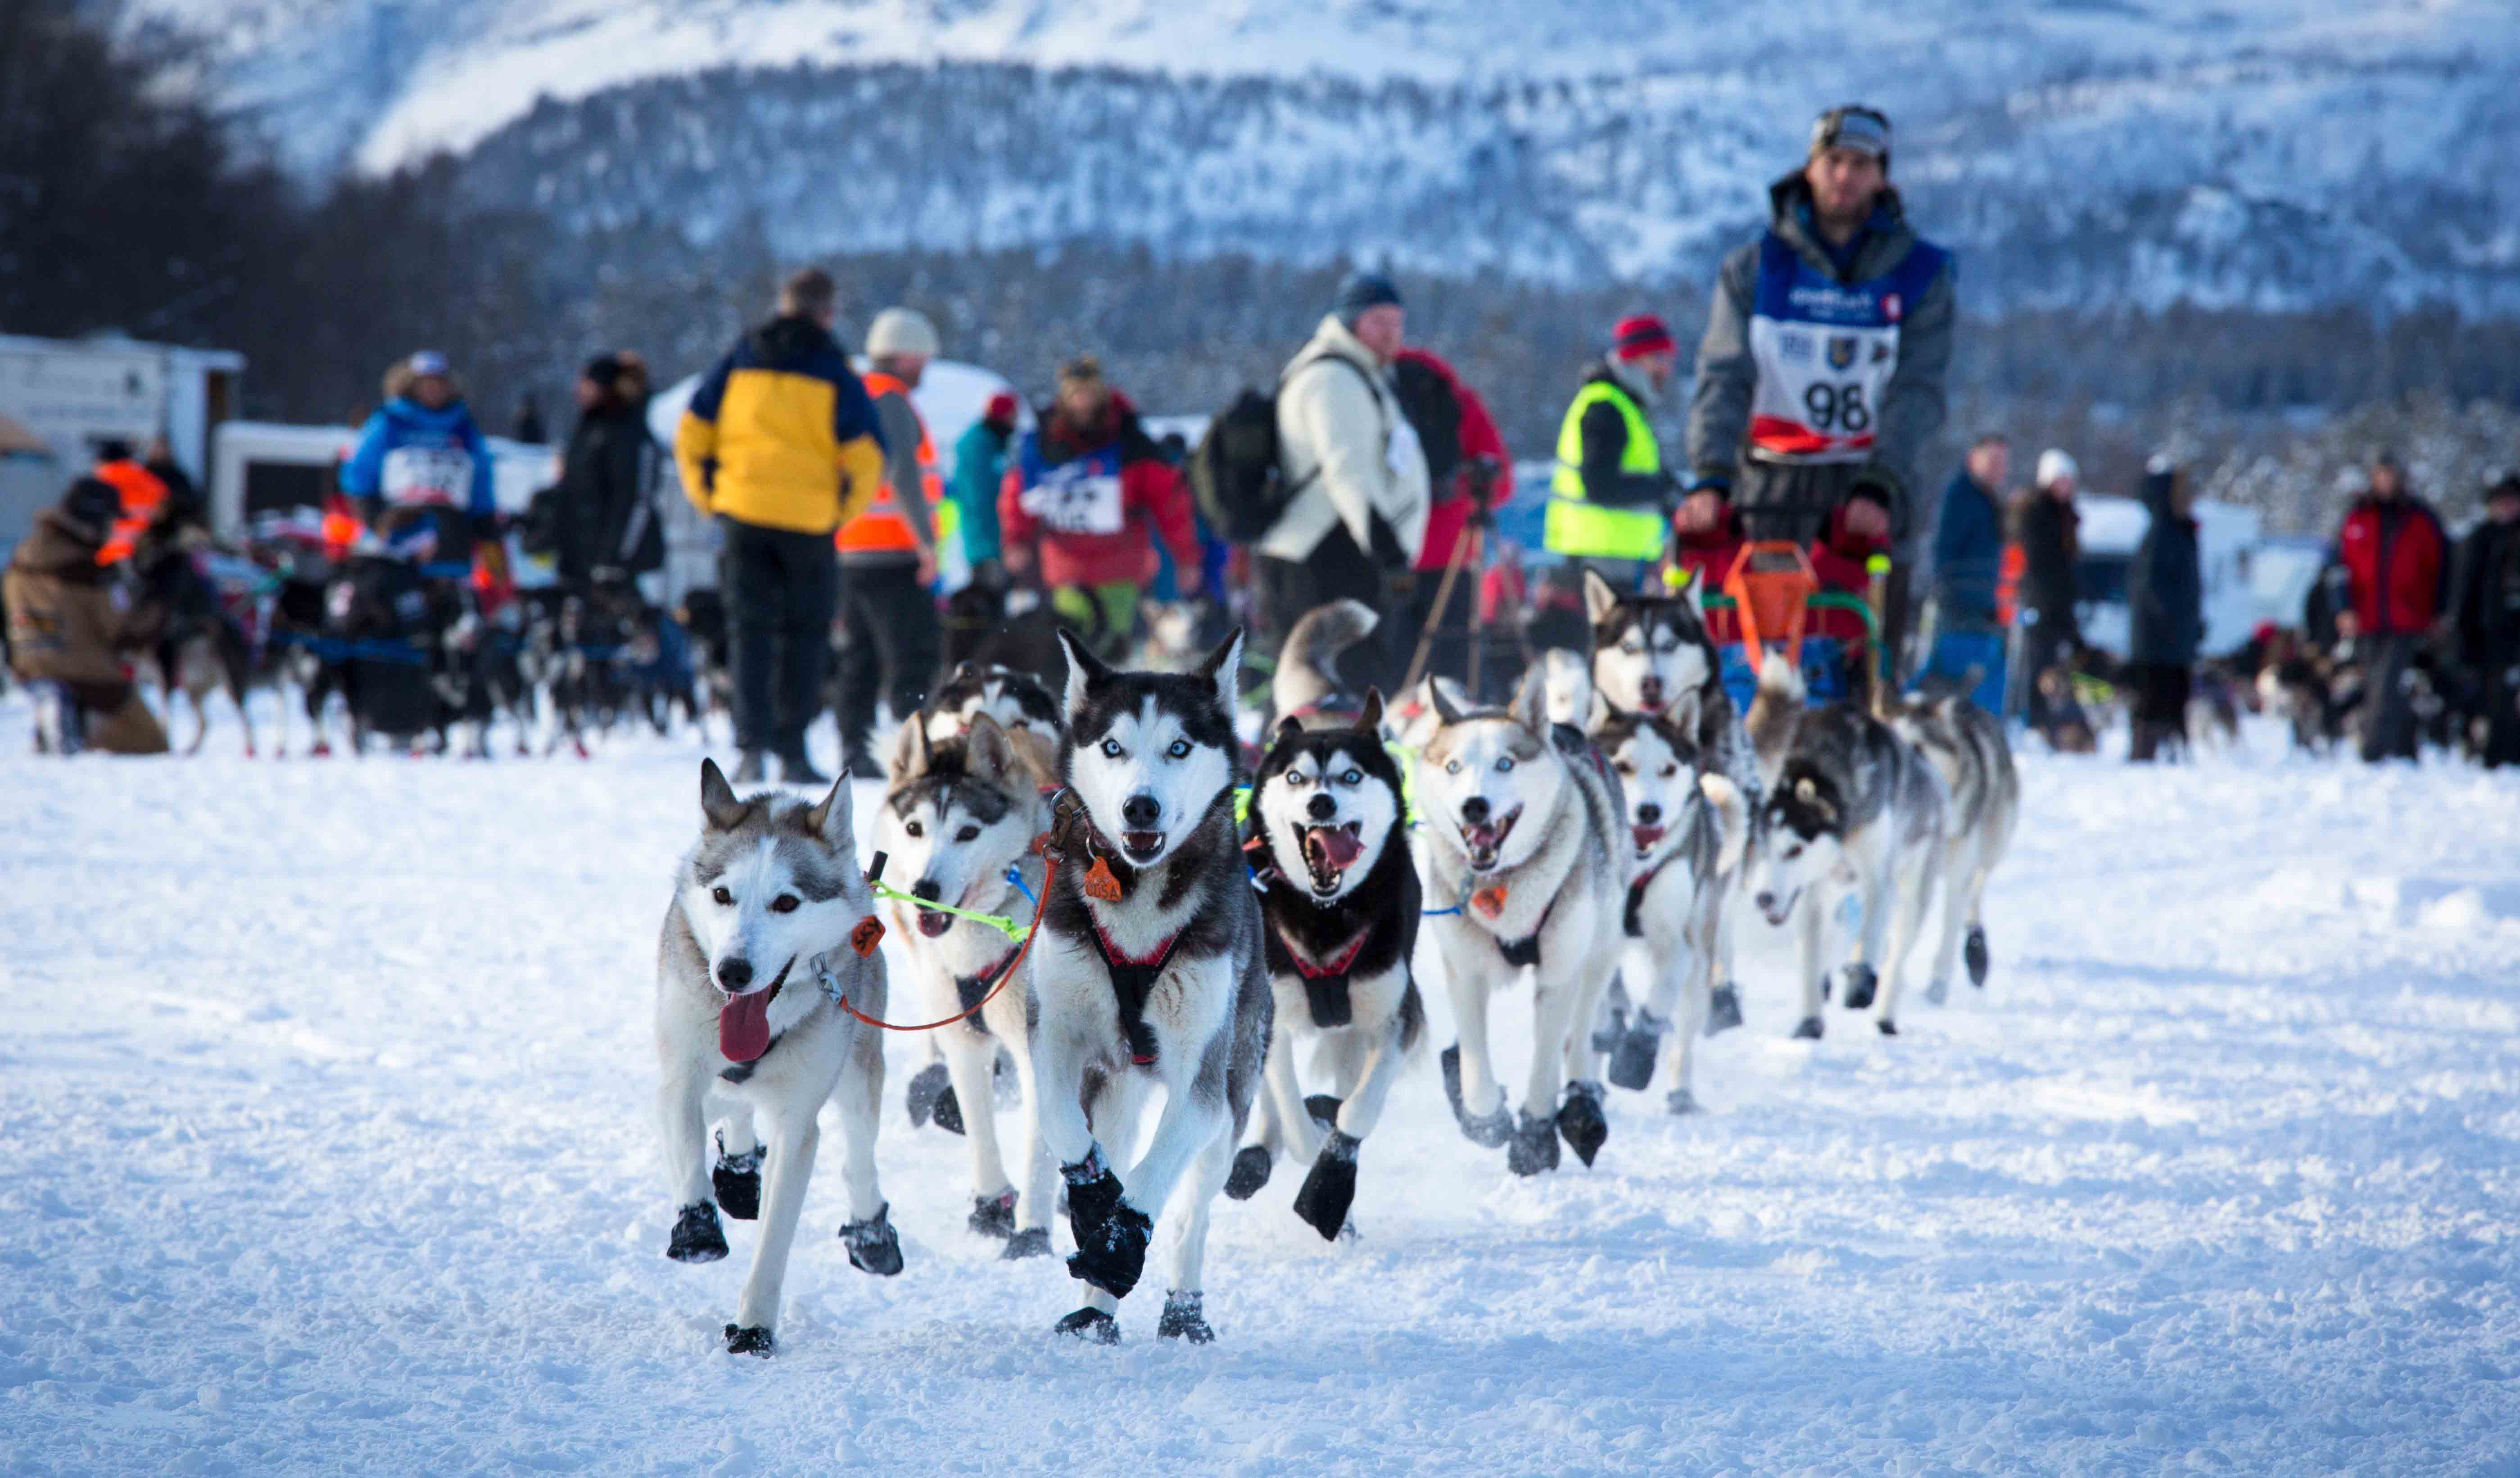 Mushing in Alta, Finnmark.